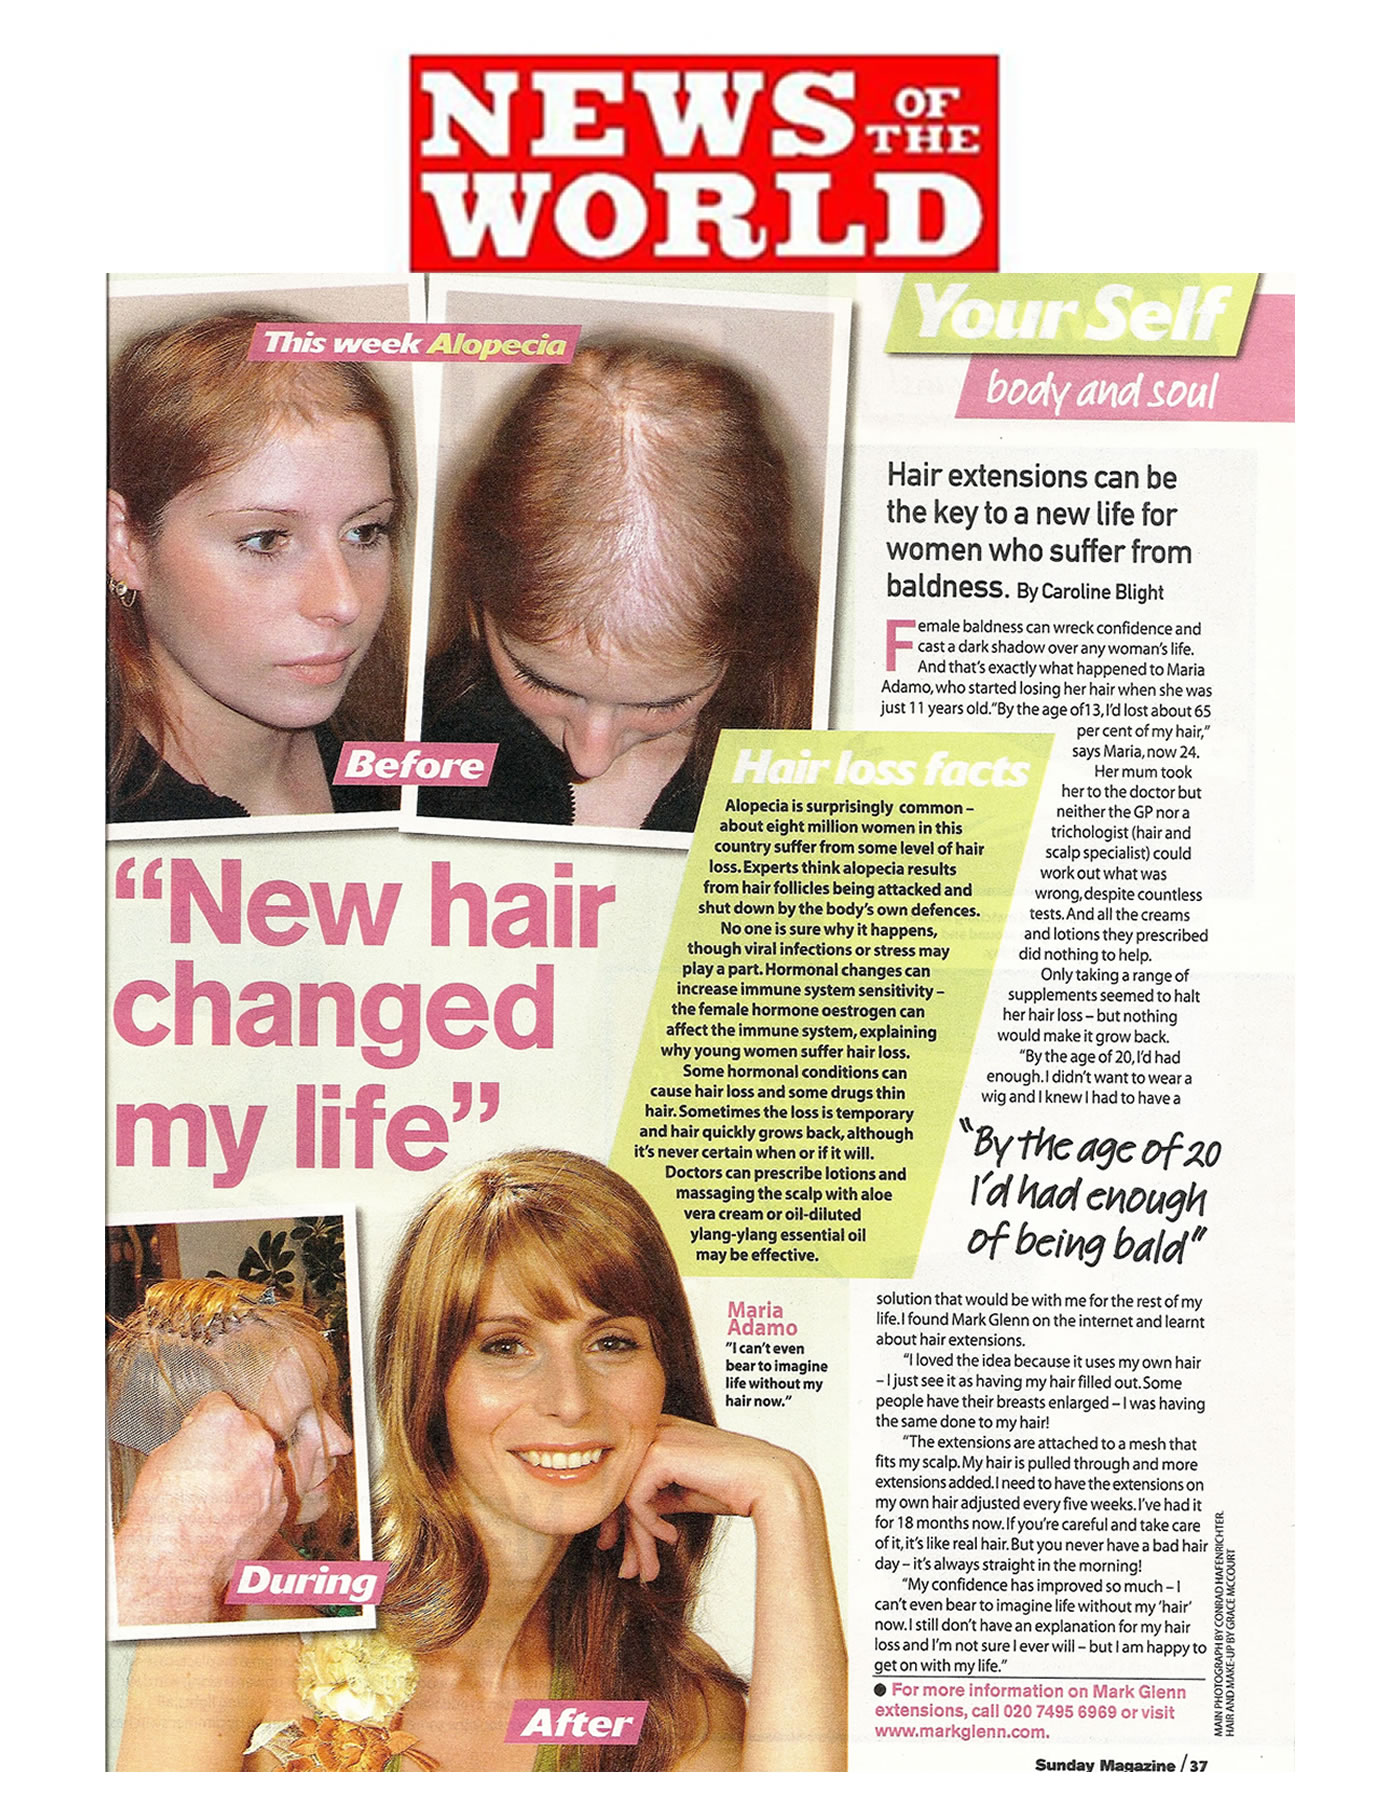 'New hair changed my life' - MG hair extensions for alopecia in News of the World